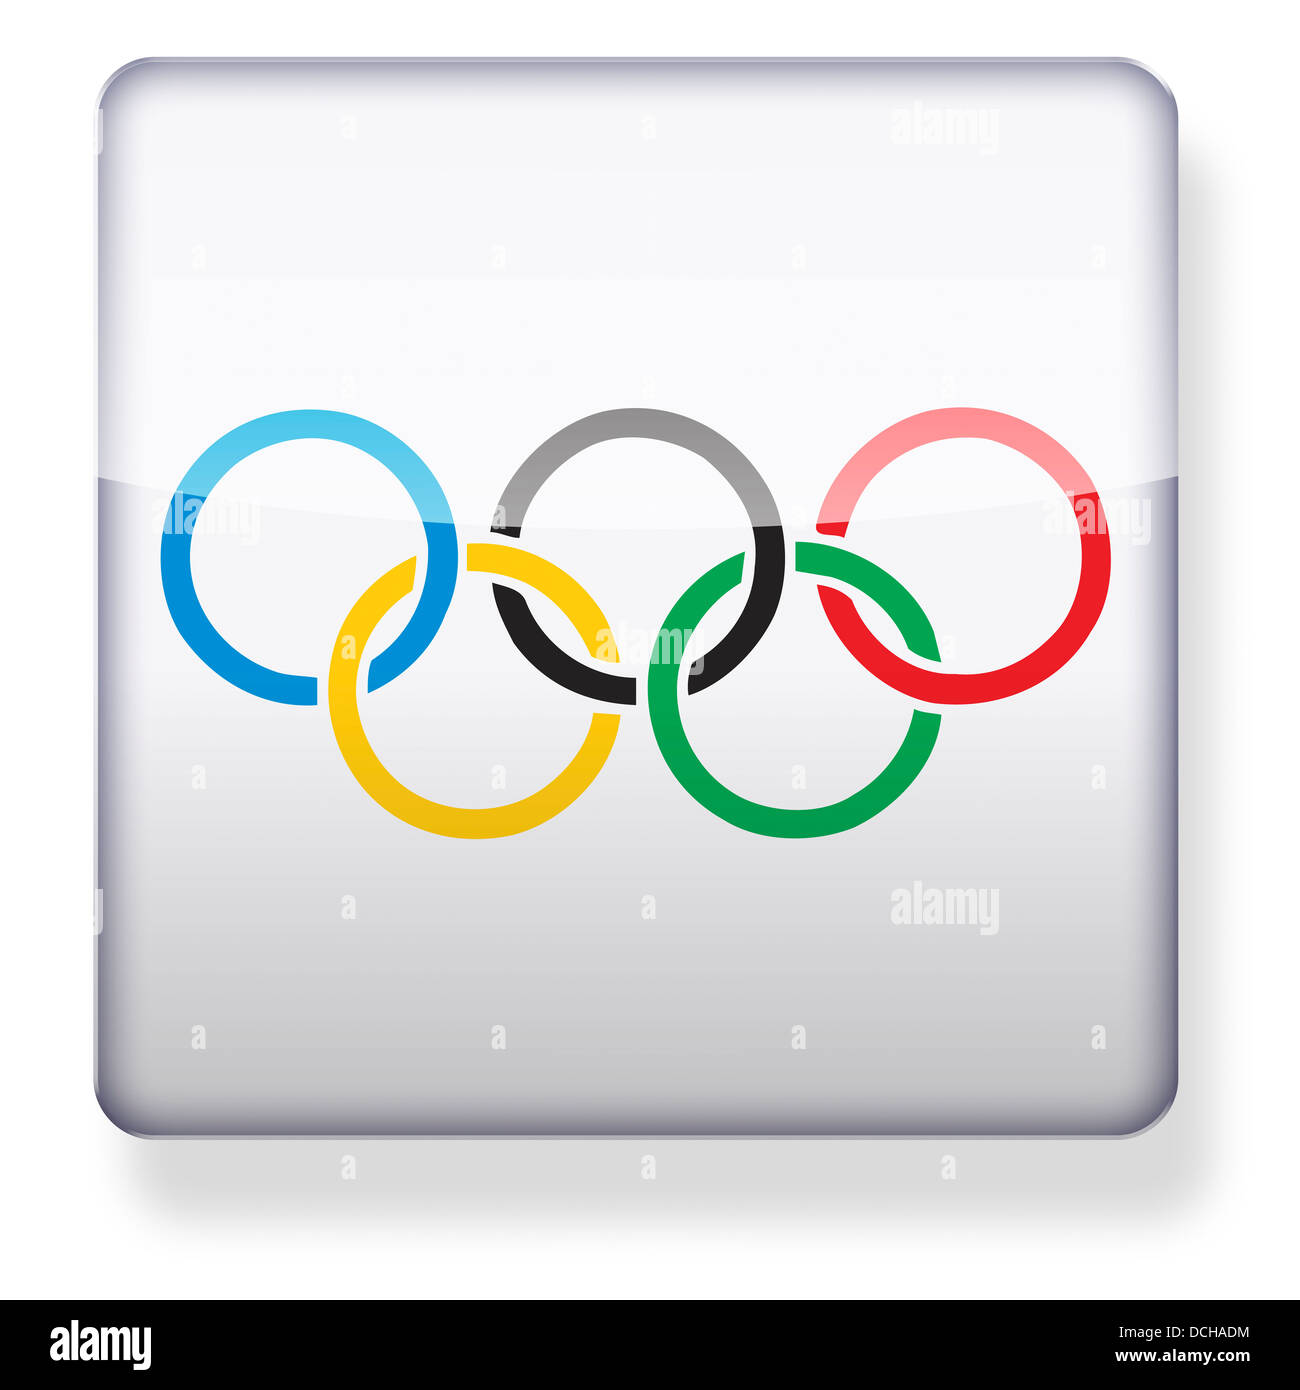 Olympic rings as an app icon. Clipping path included. - Stock Image